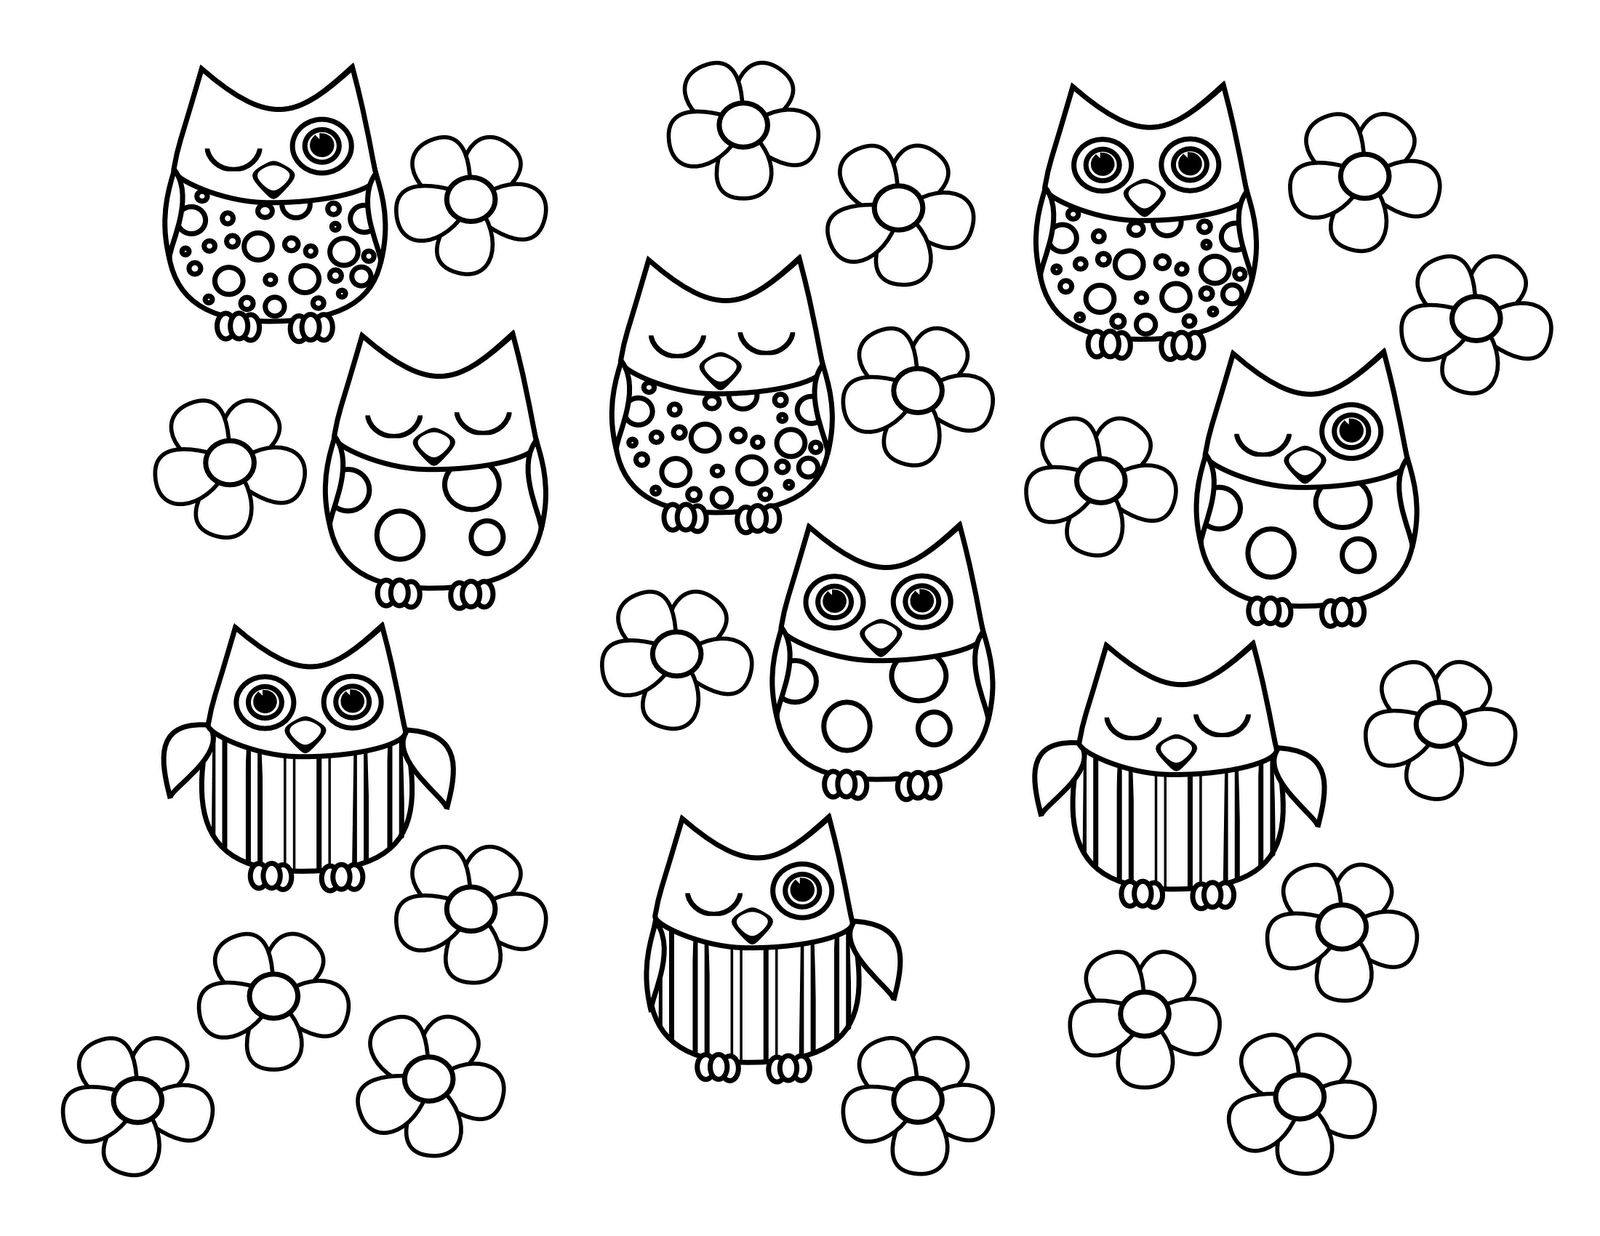 cute owl printable coloring pages cute owl coloring pages coloring home cute coloring pages owl printable